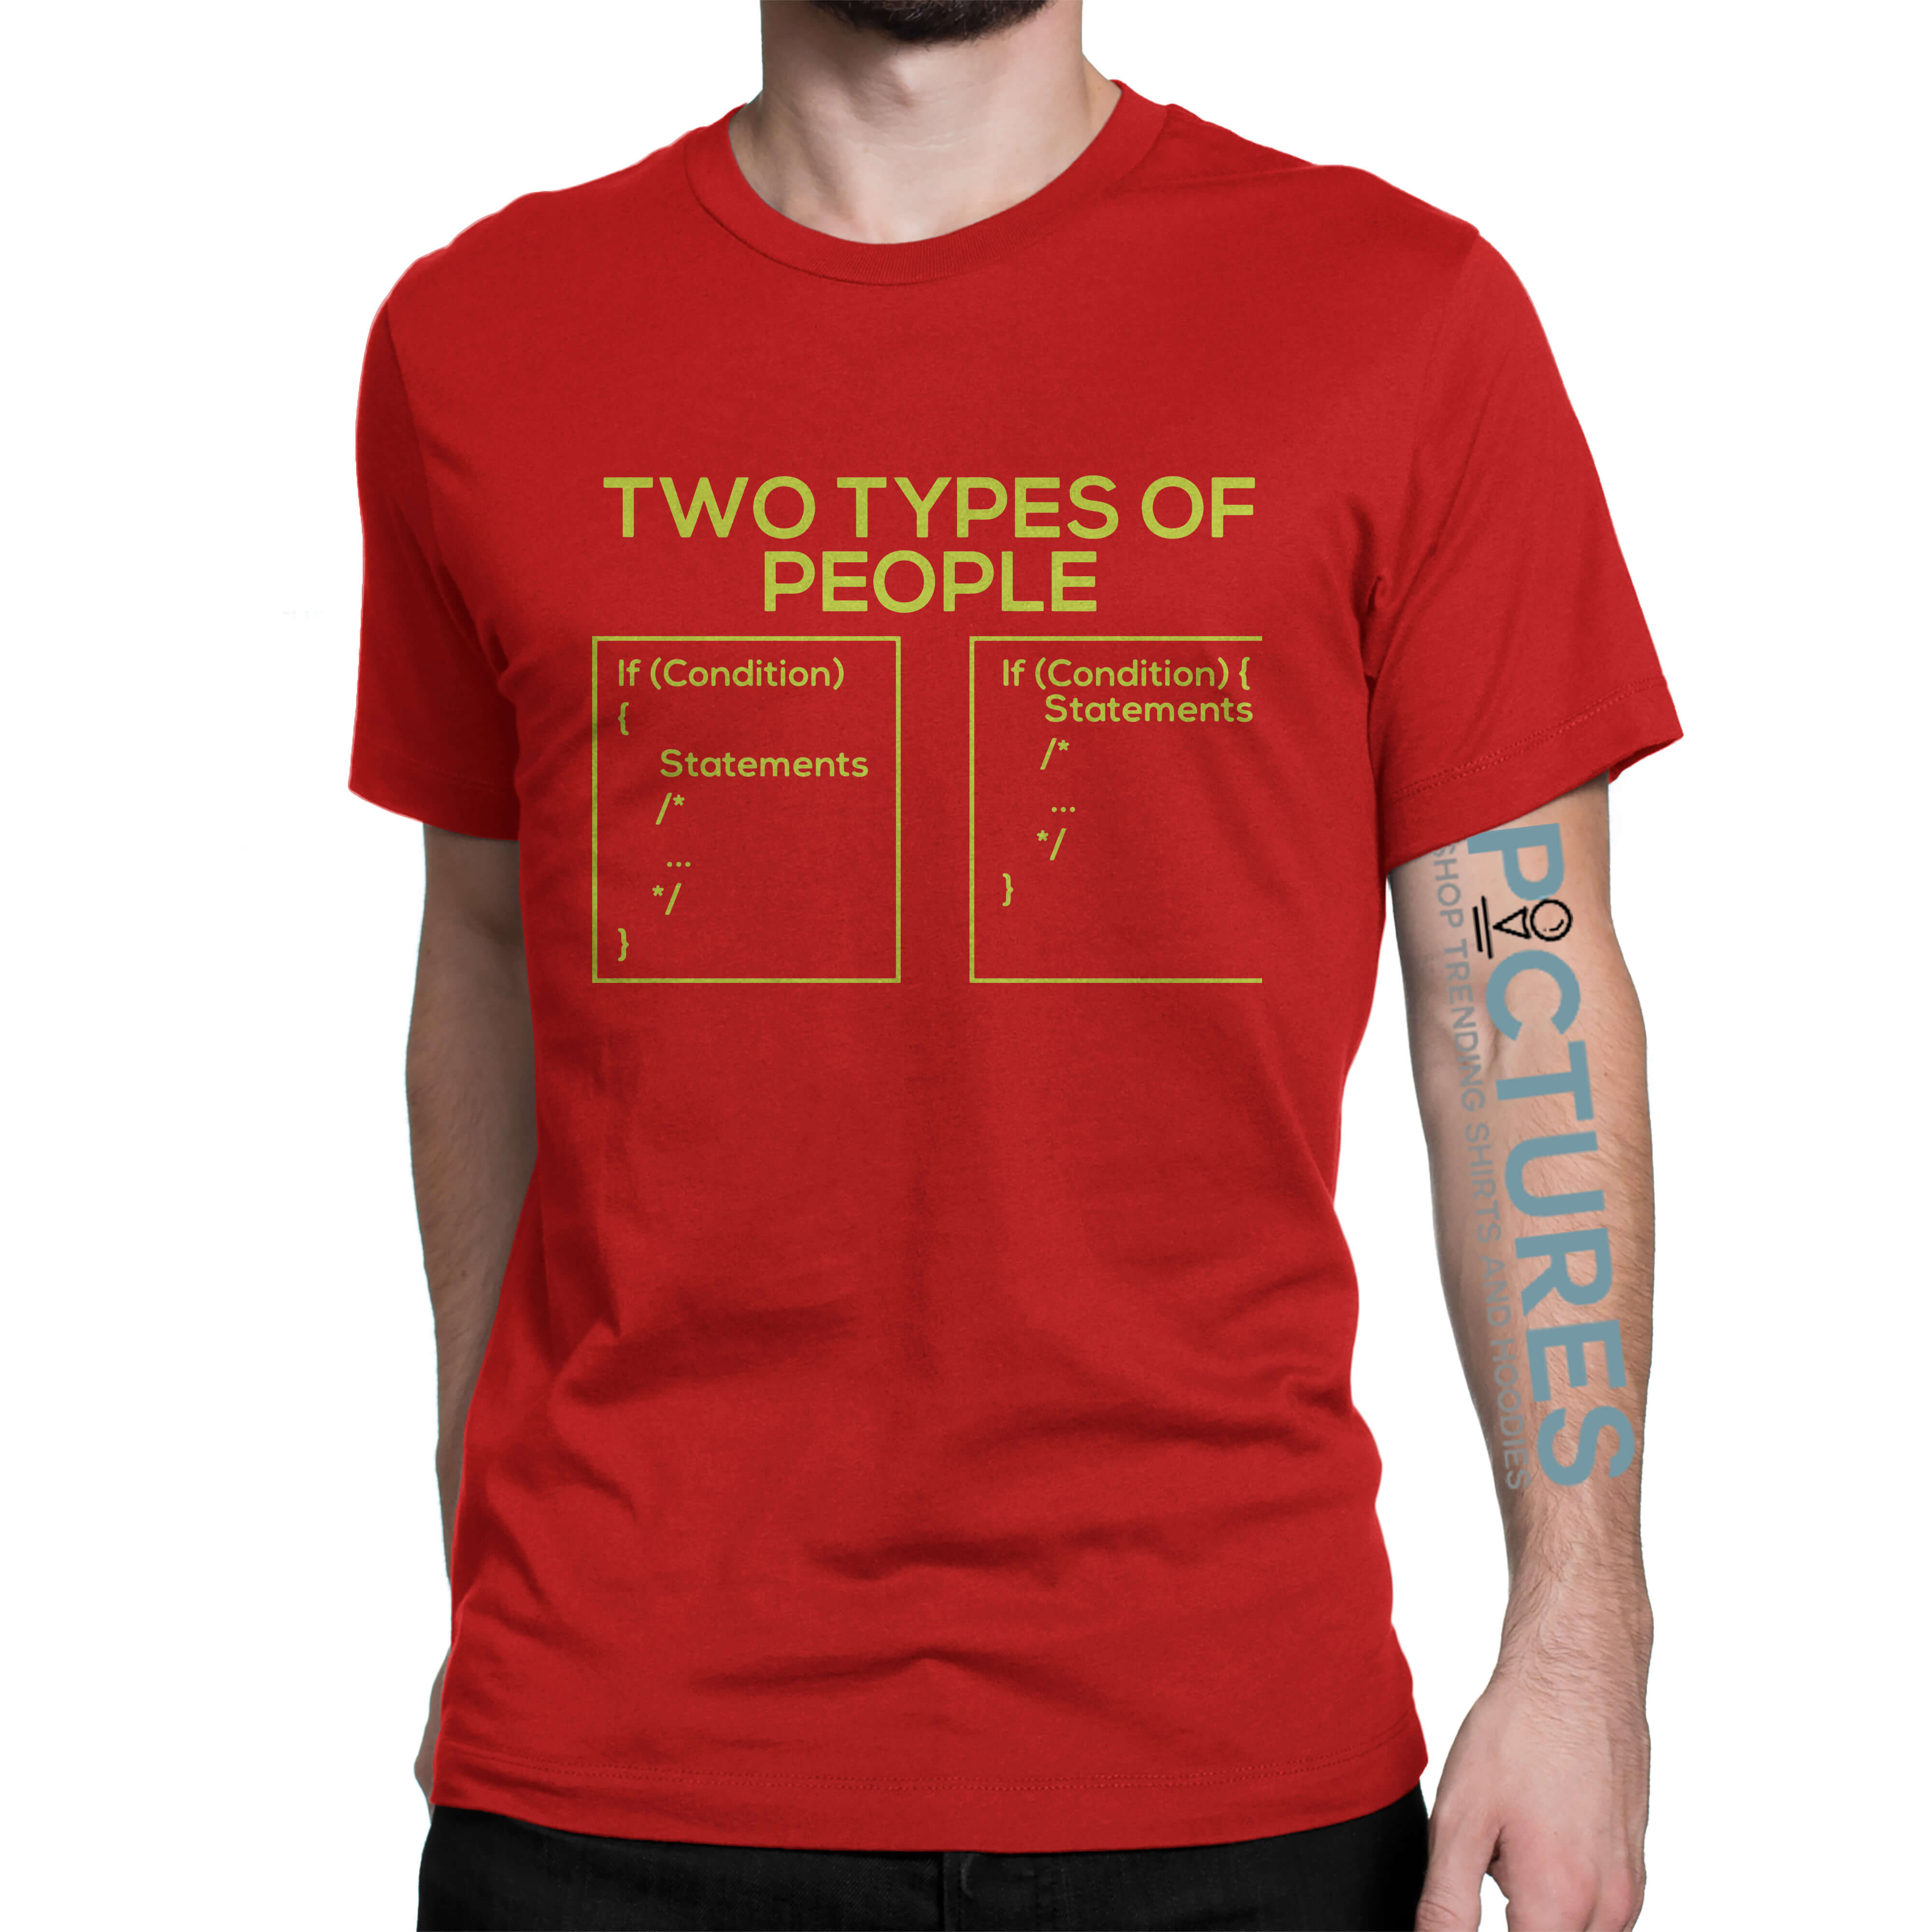 Two types of people developer's world shirt